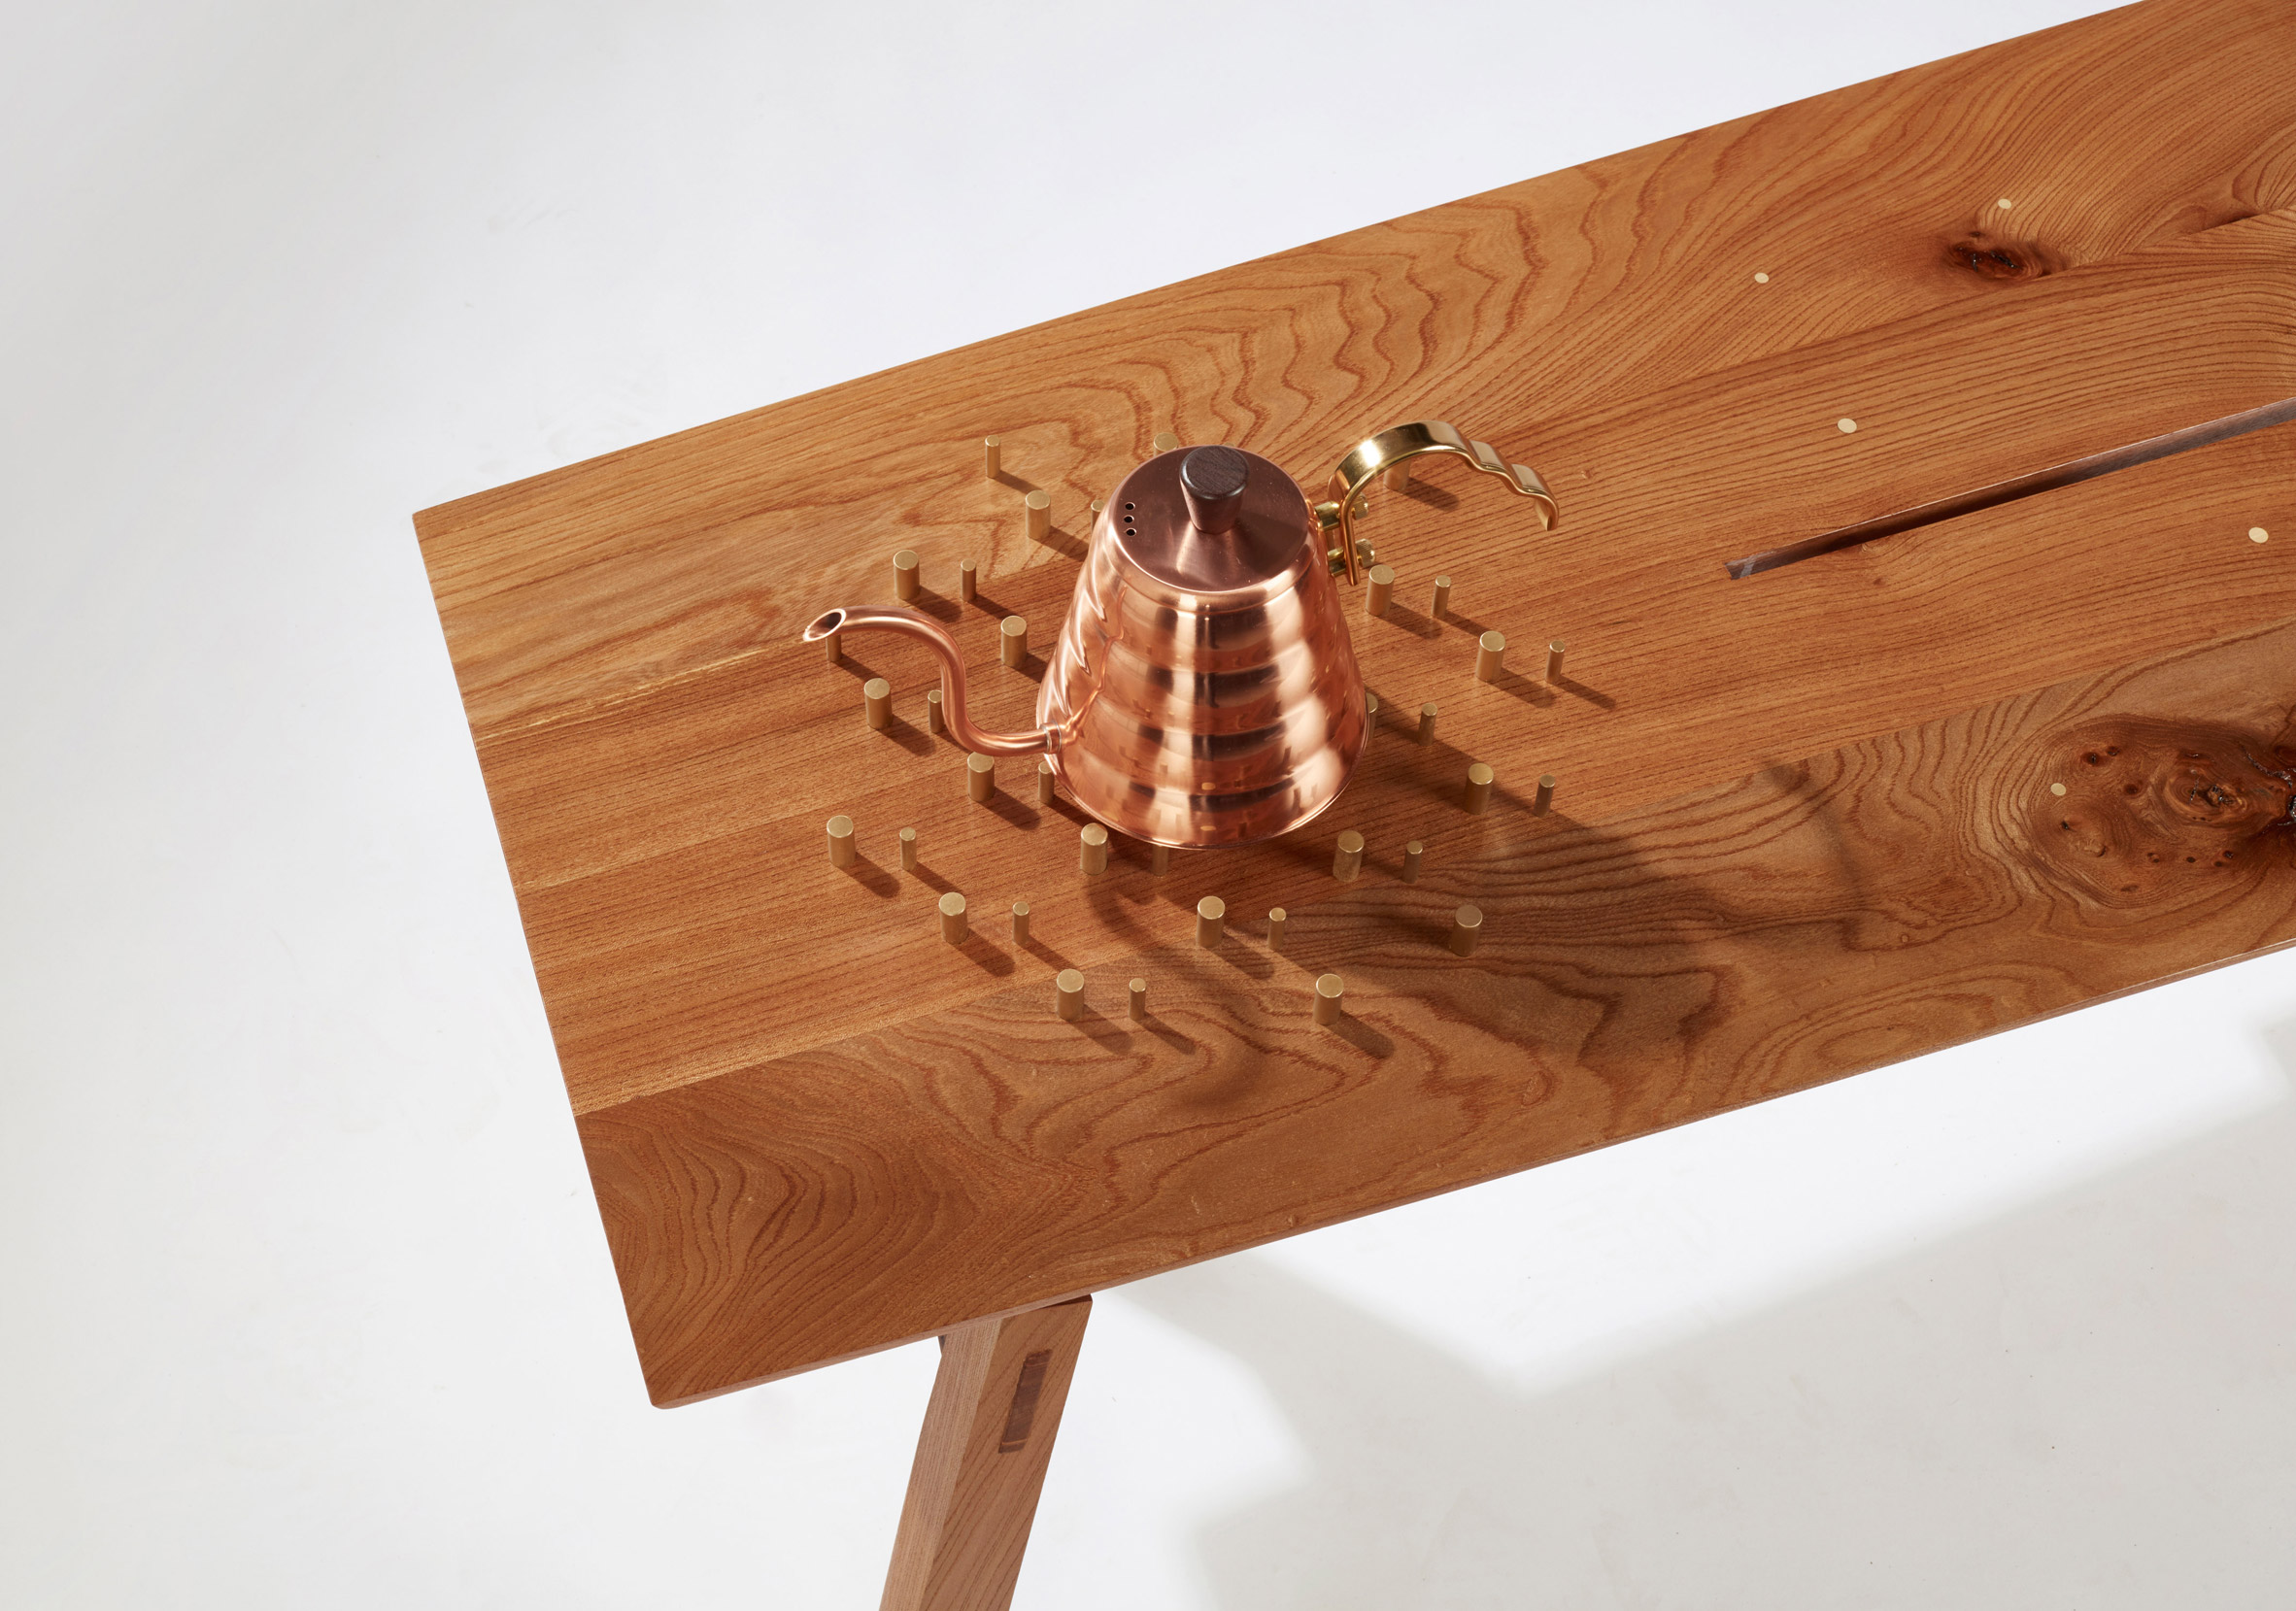 the-coffee-ceremony-hugh-miller-furniture-design-chair-table_dezeen_2364_col_13